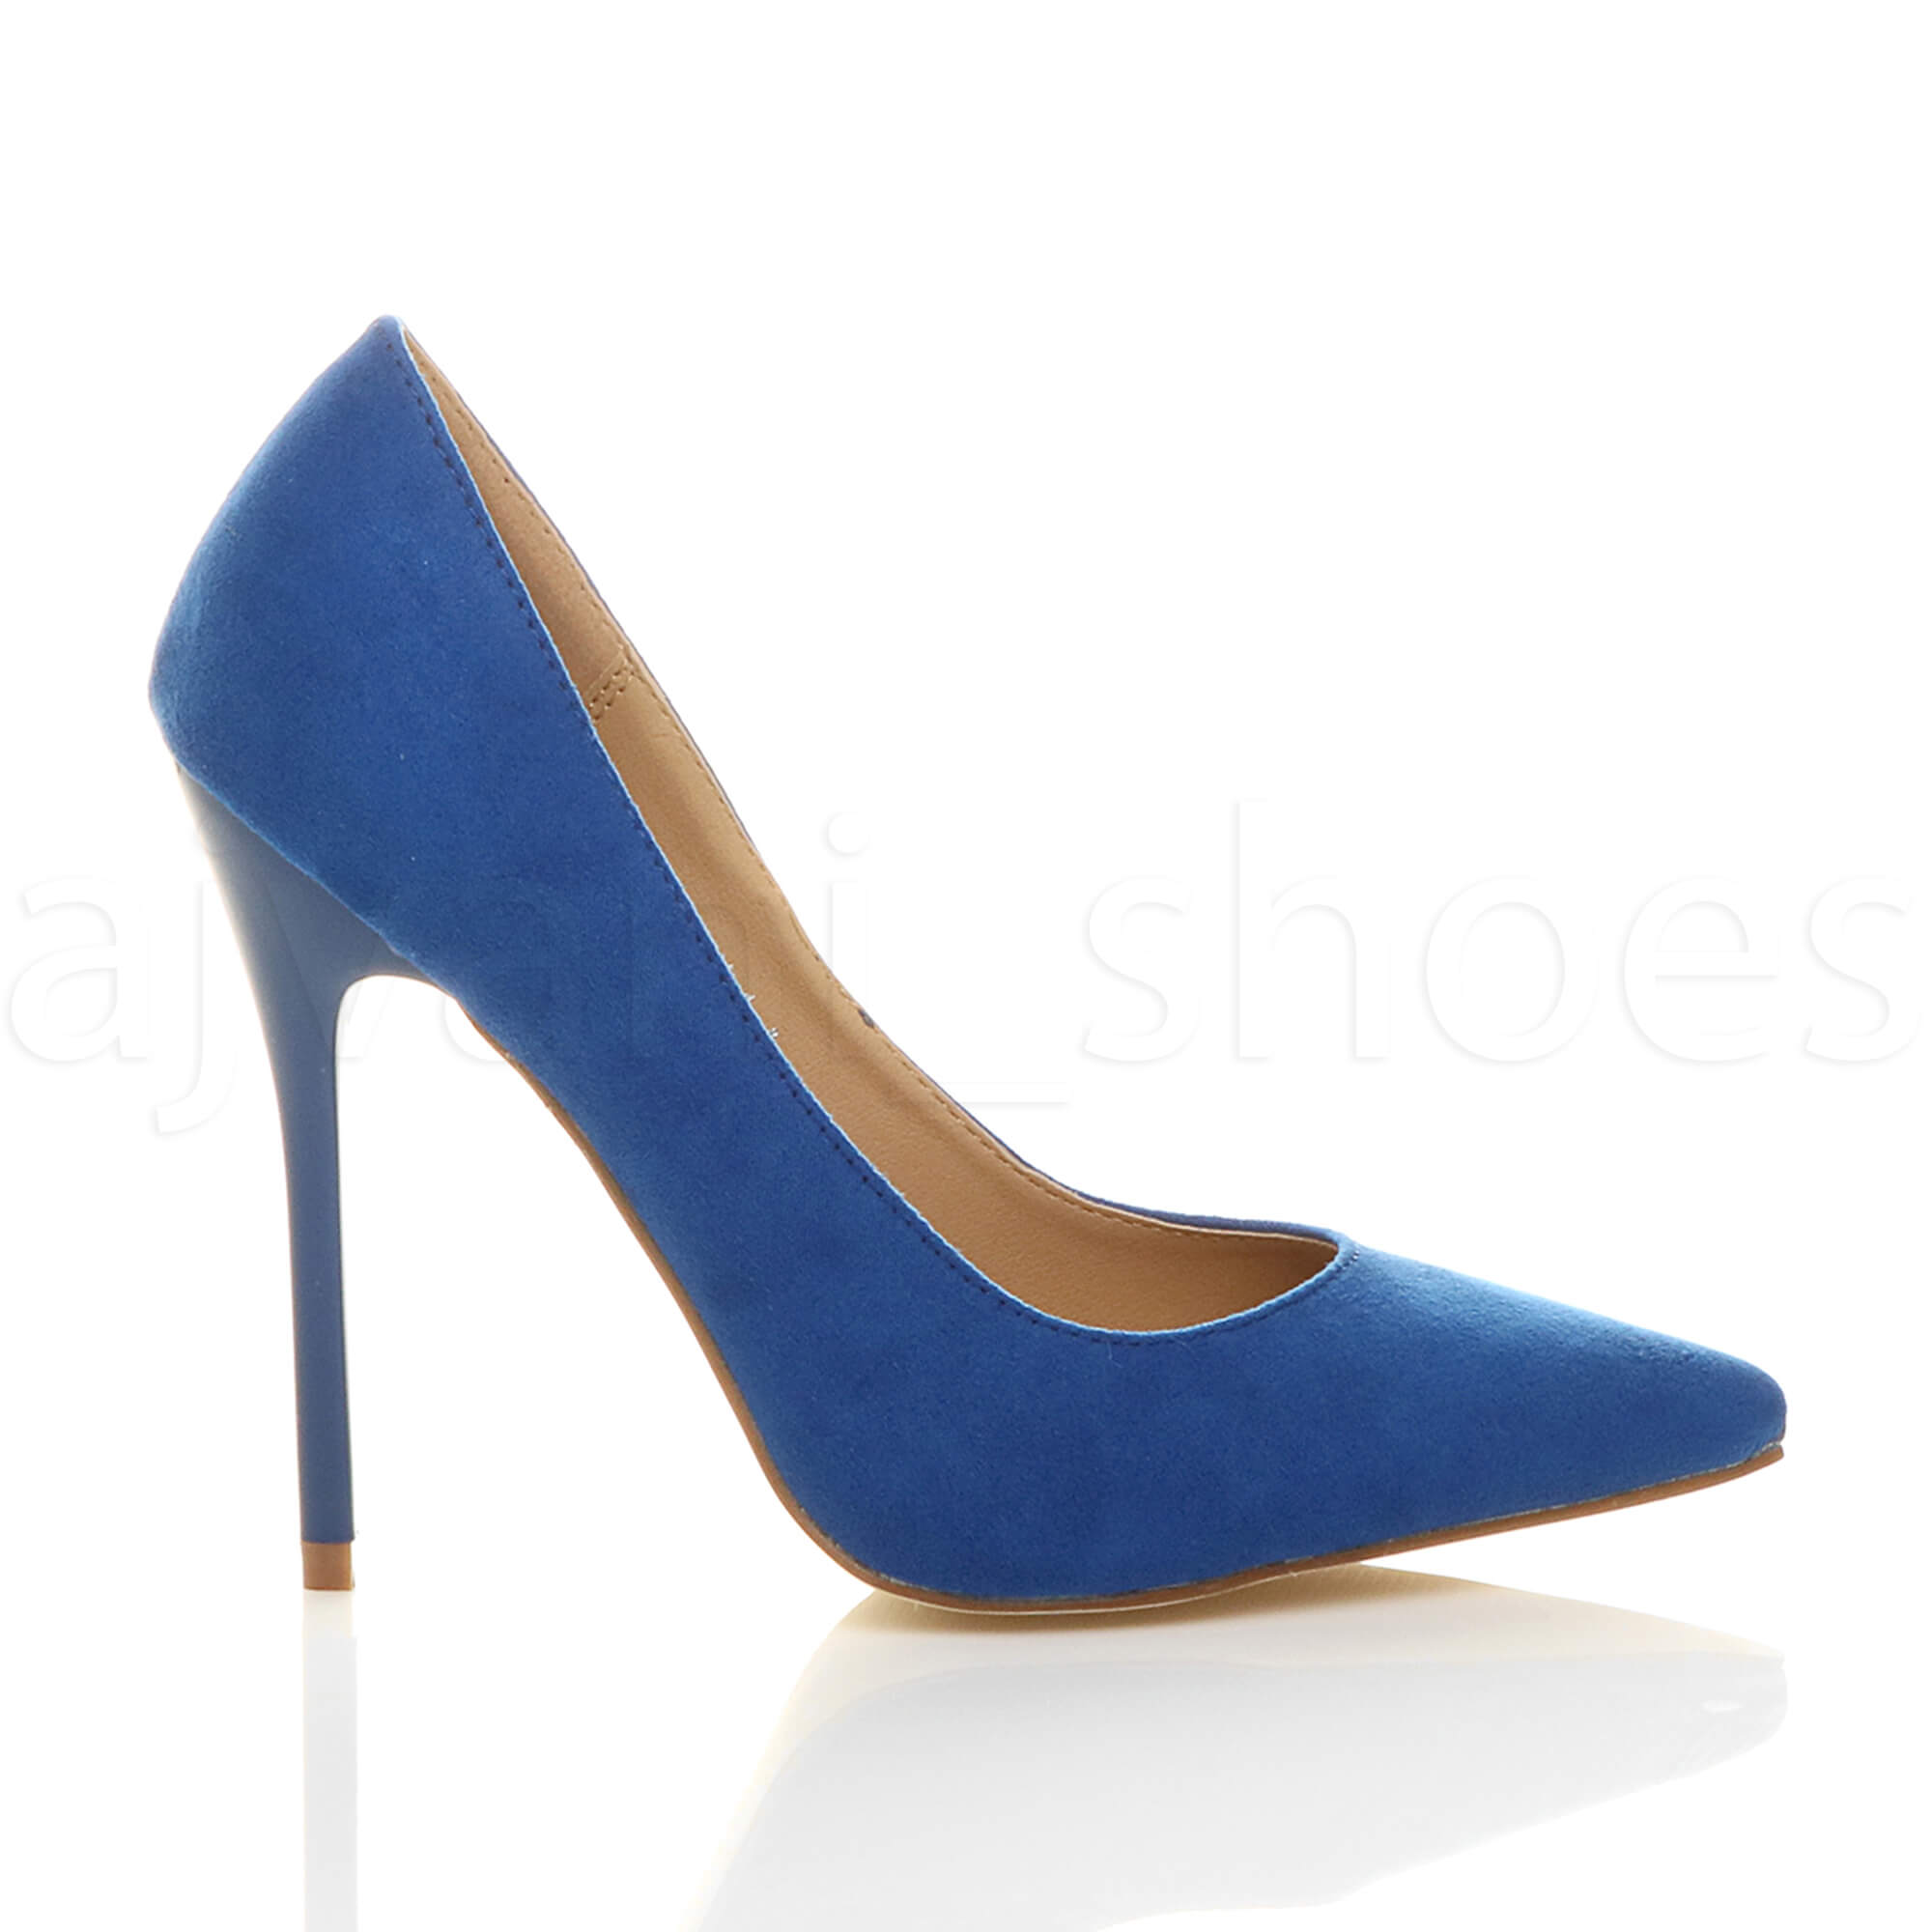 WOMENS-LADIES-HIGH-HEEL-POINTED-CONTRAST-COURT-SMART-PARTY-WORK-SHOES-PUMPS-SIZE thumbnail 43